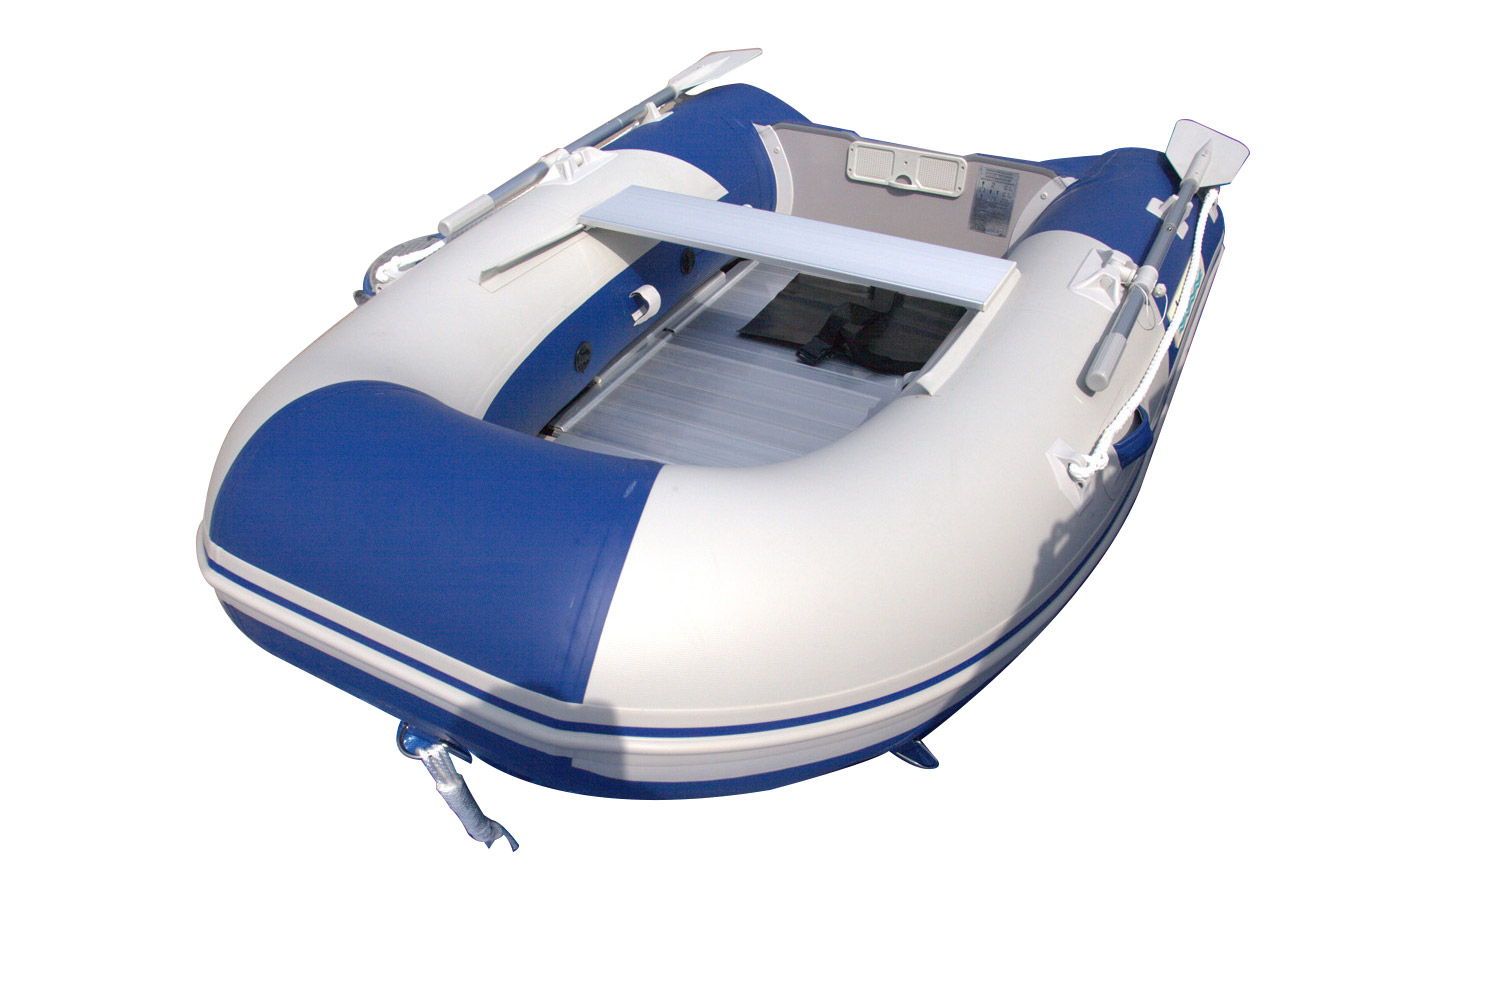 7.5 FT INFLATABLE DINGHY PRO HEAVY DUTY WATERLINE ...